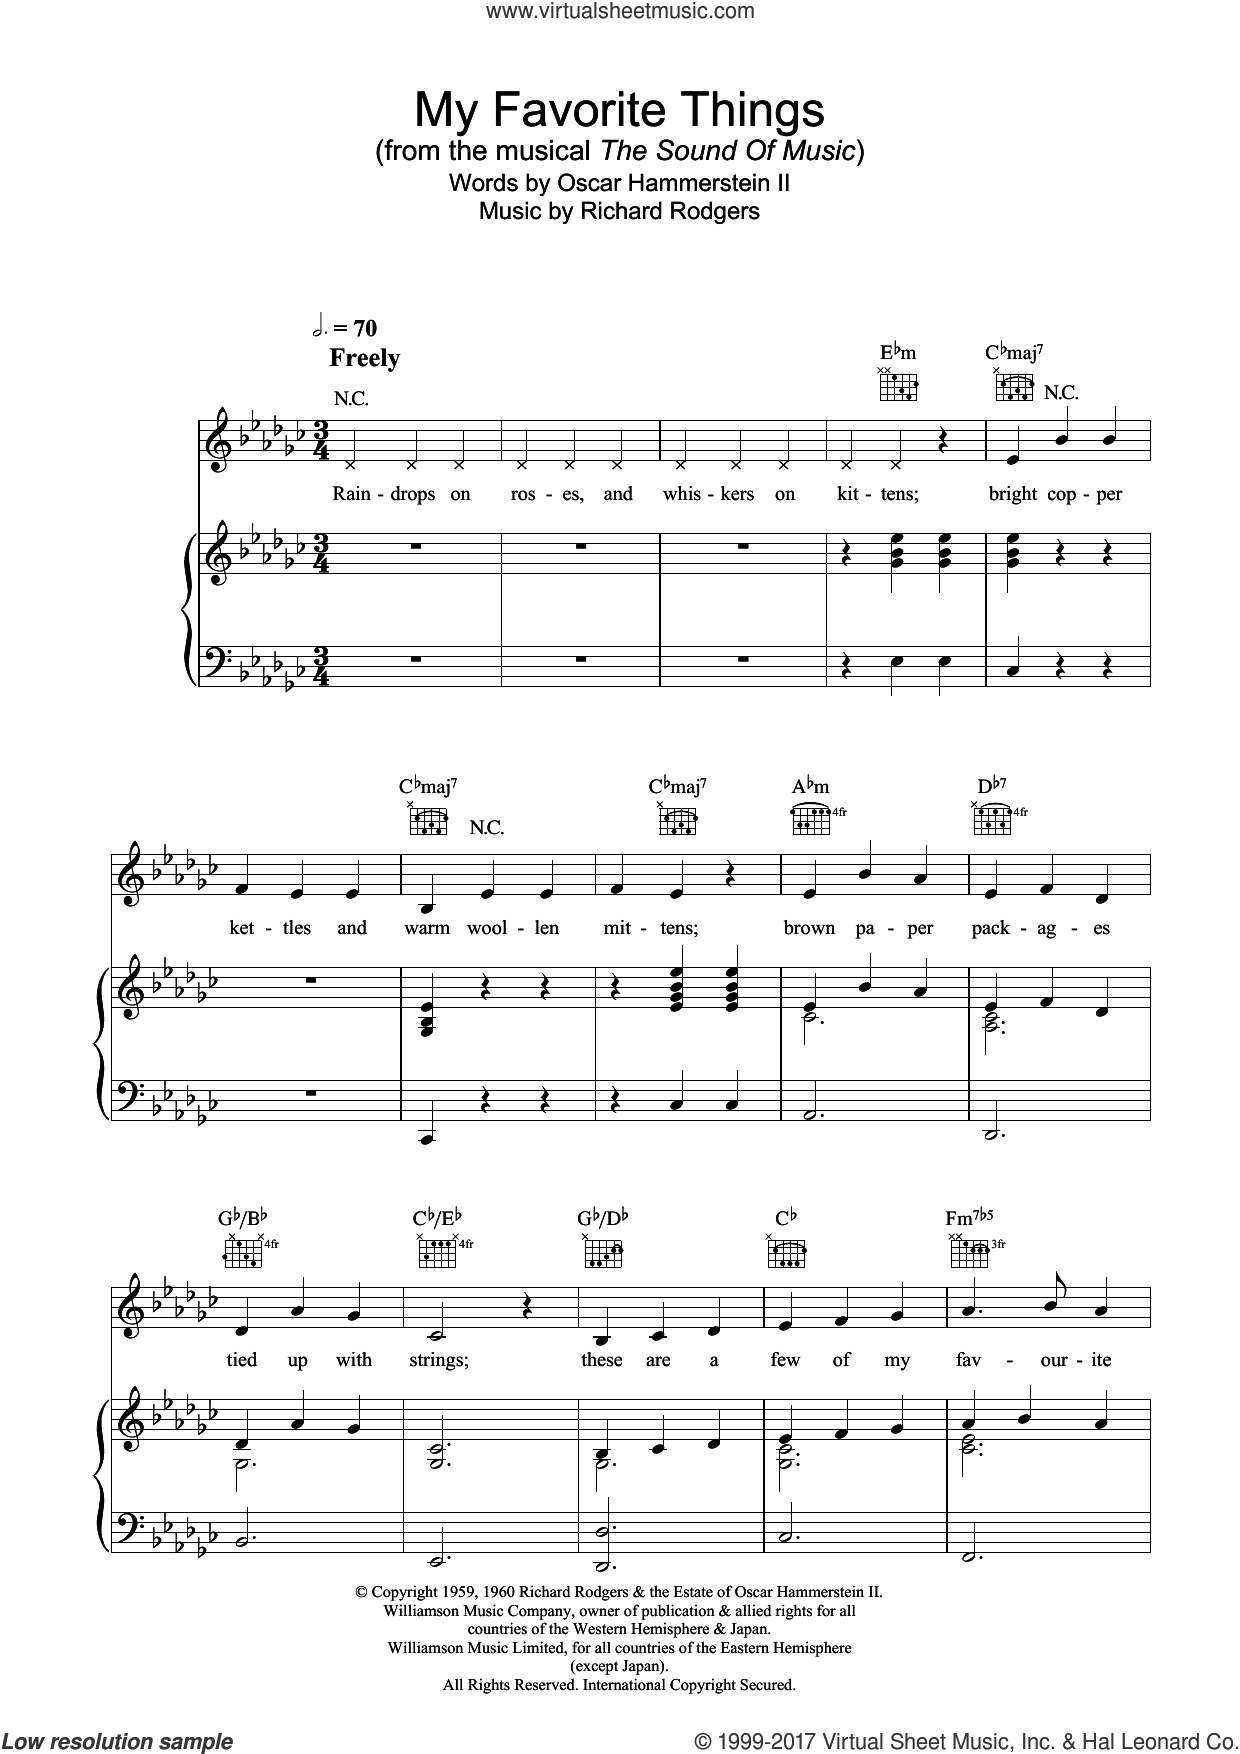 My Favorite Things sheet music for voice, piano or guitar by Richard Rodgers